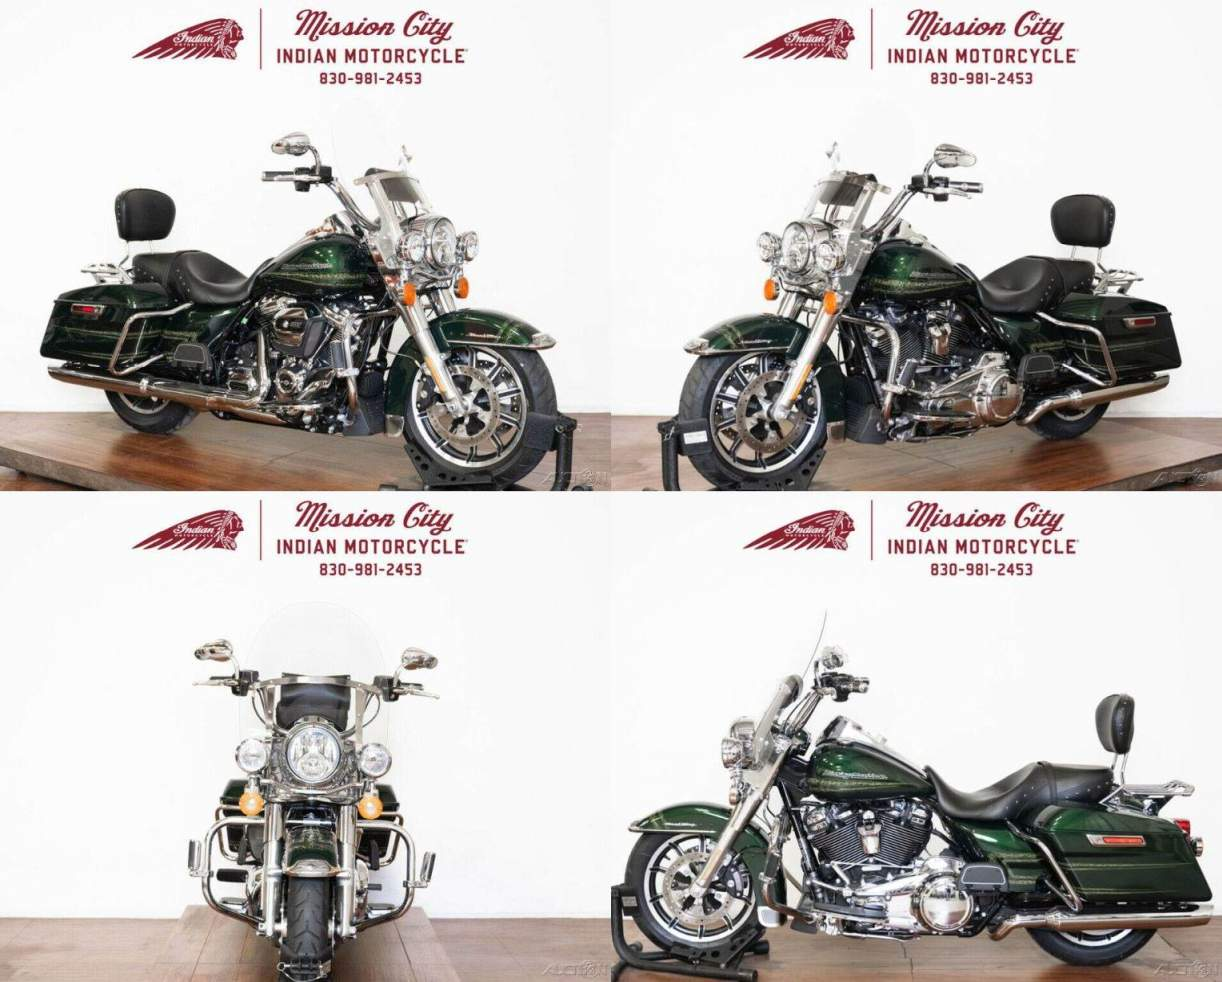 2019 Harley-Davidson Touring Kinetic Green used for sale near me